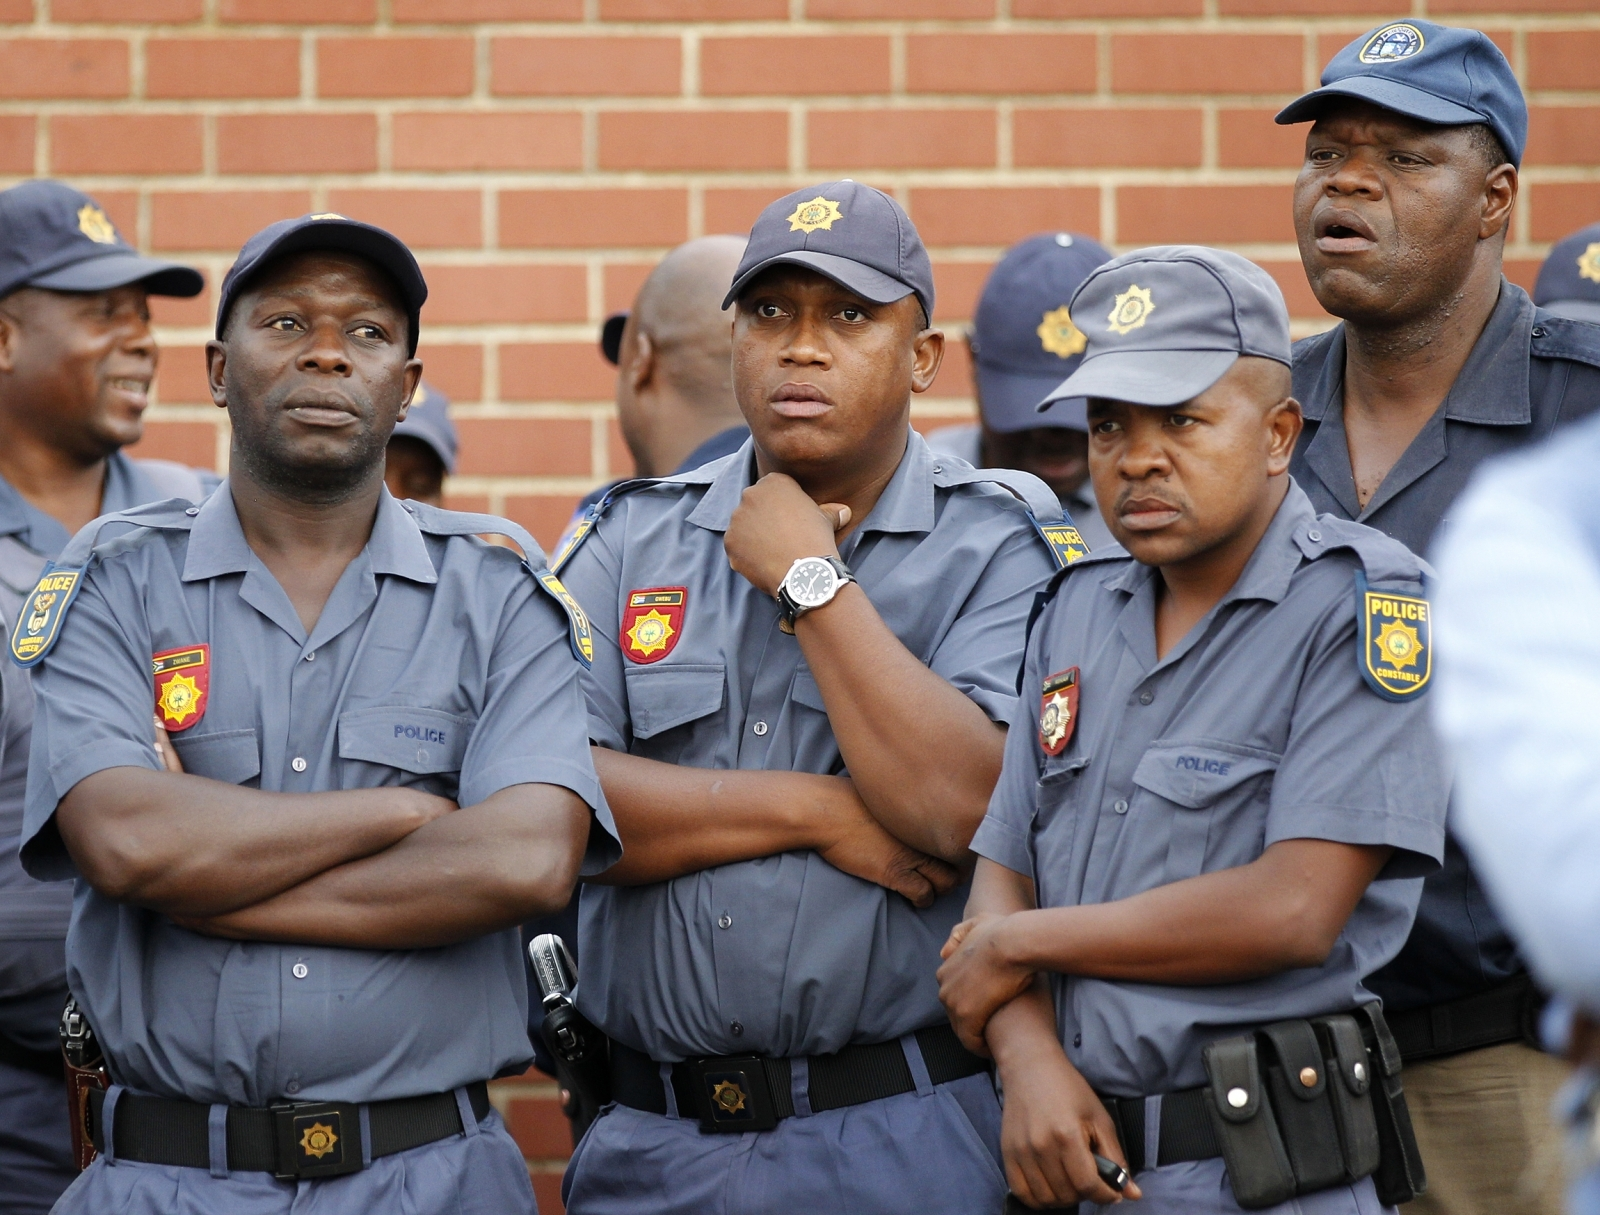 South Africa police station attack